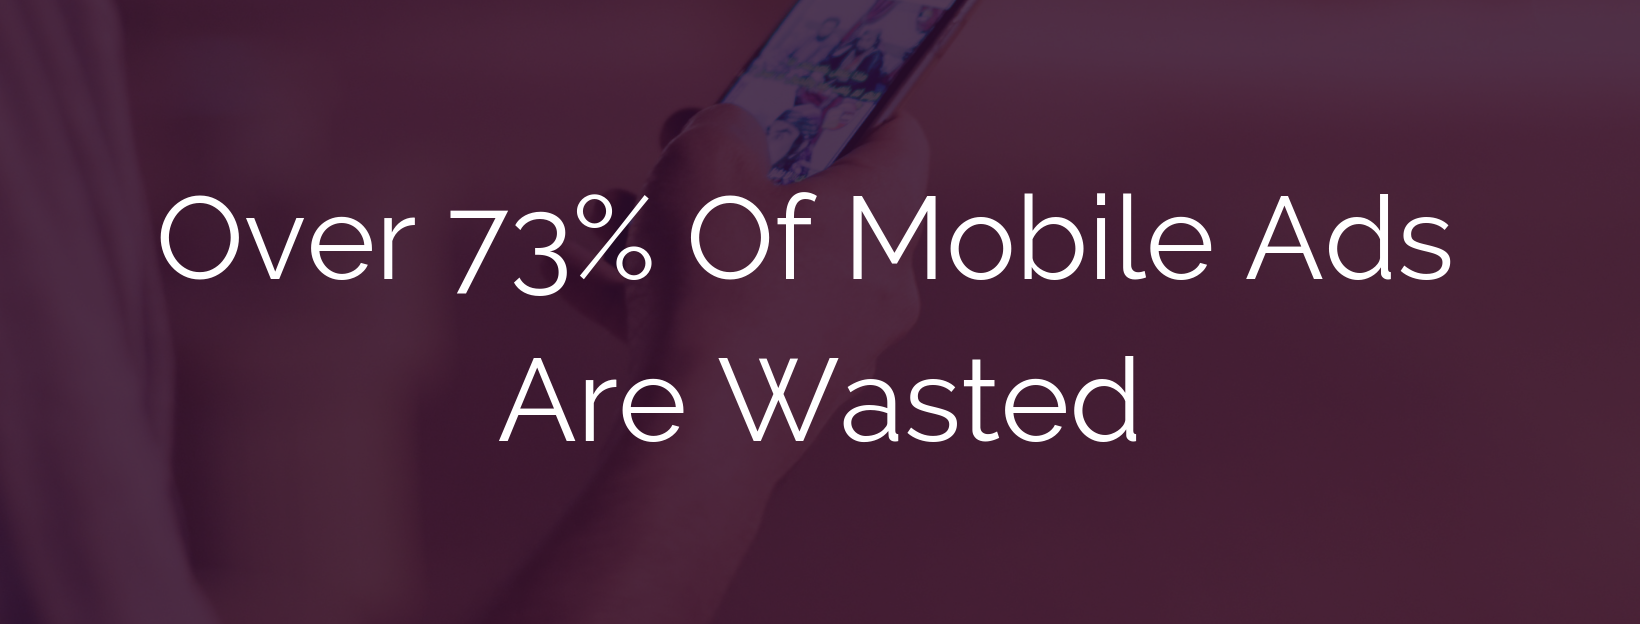 Over 73% Of Mobile Ads Are Wasted (3).png